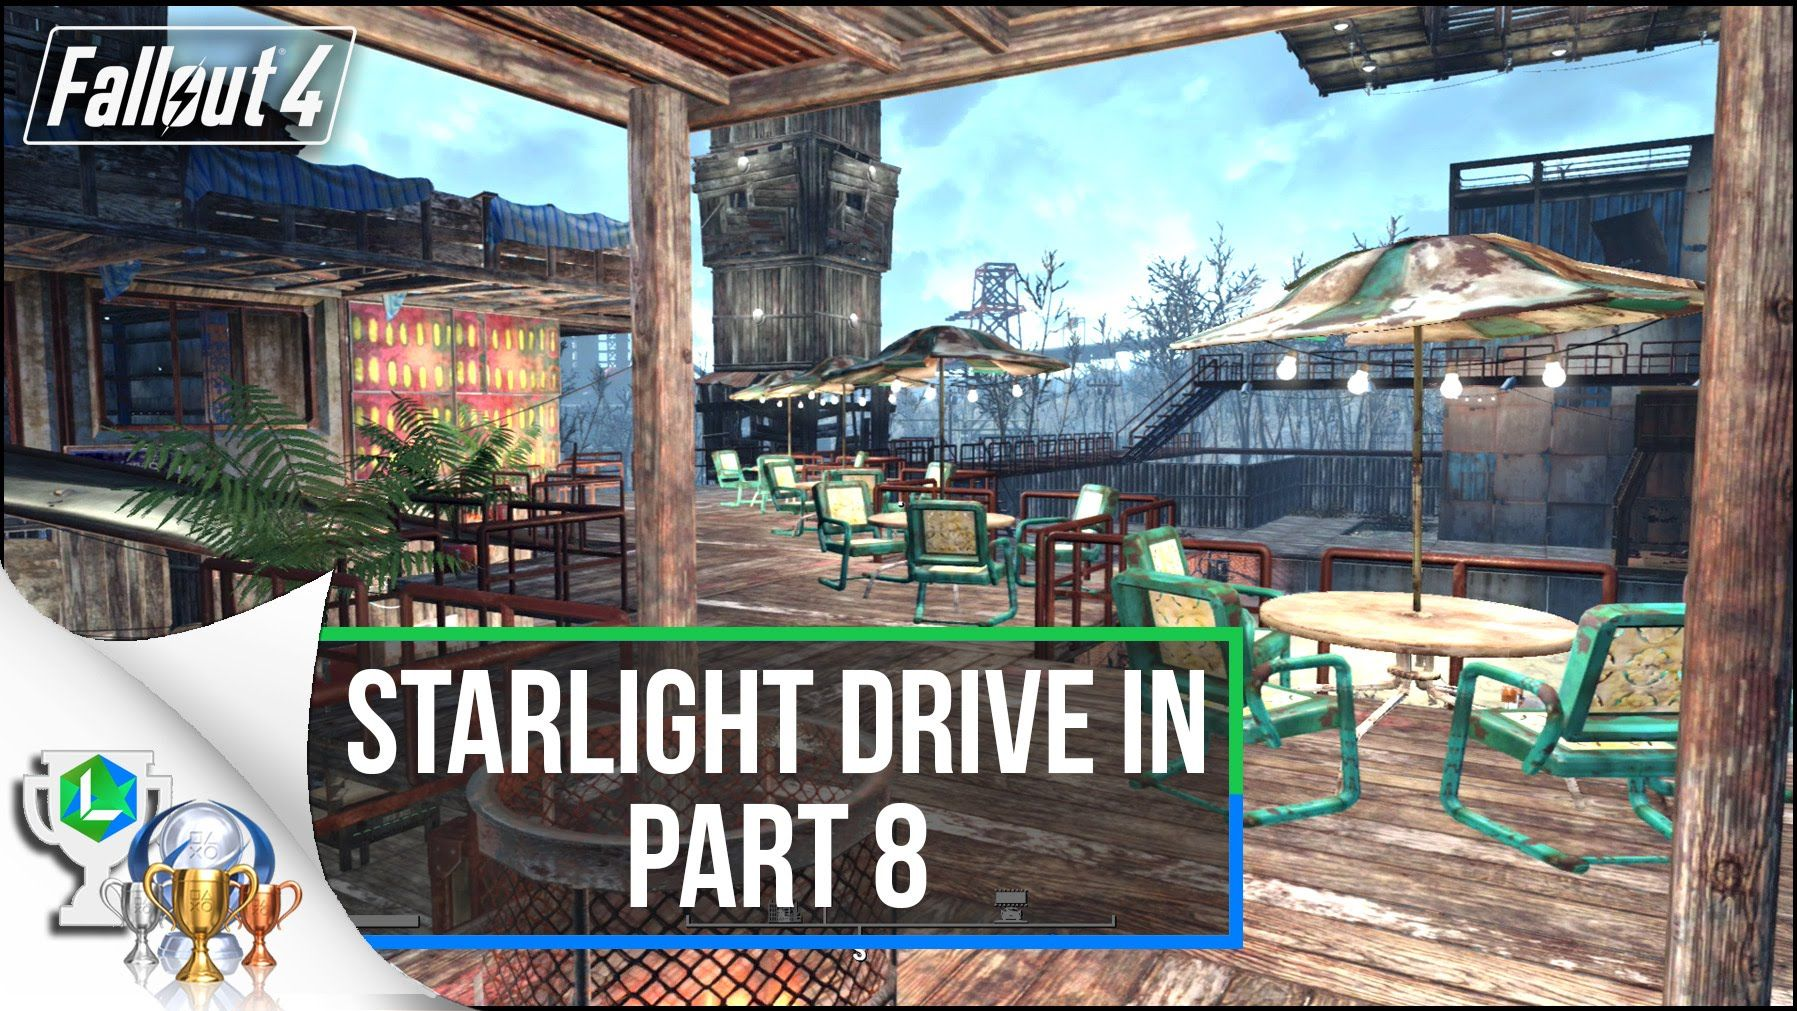 fallout 4 guide lets build starlight drive in settlement build